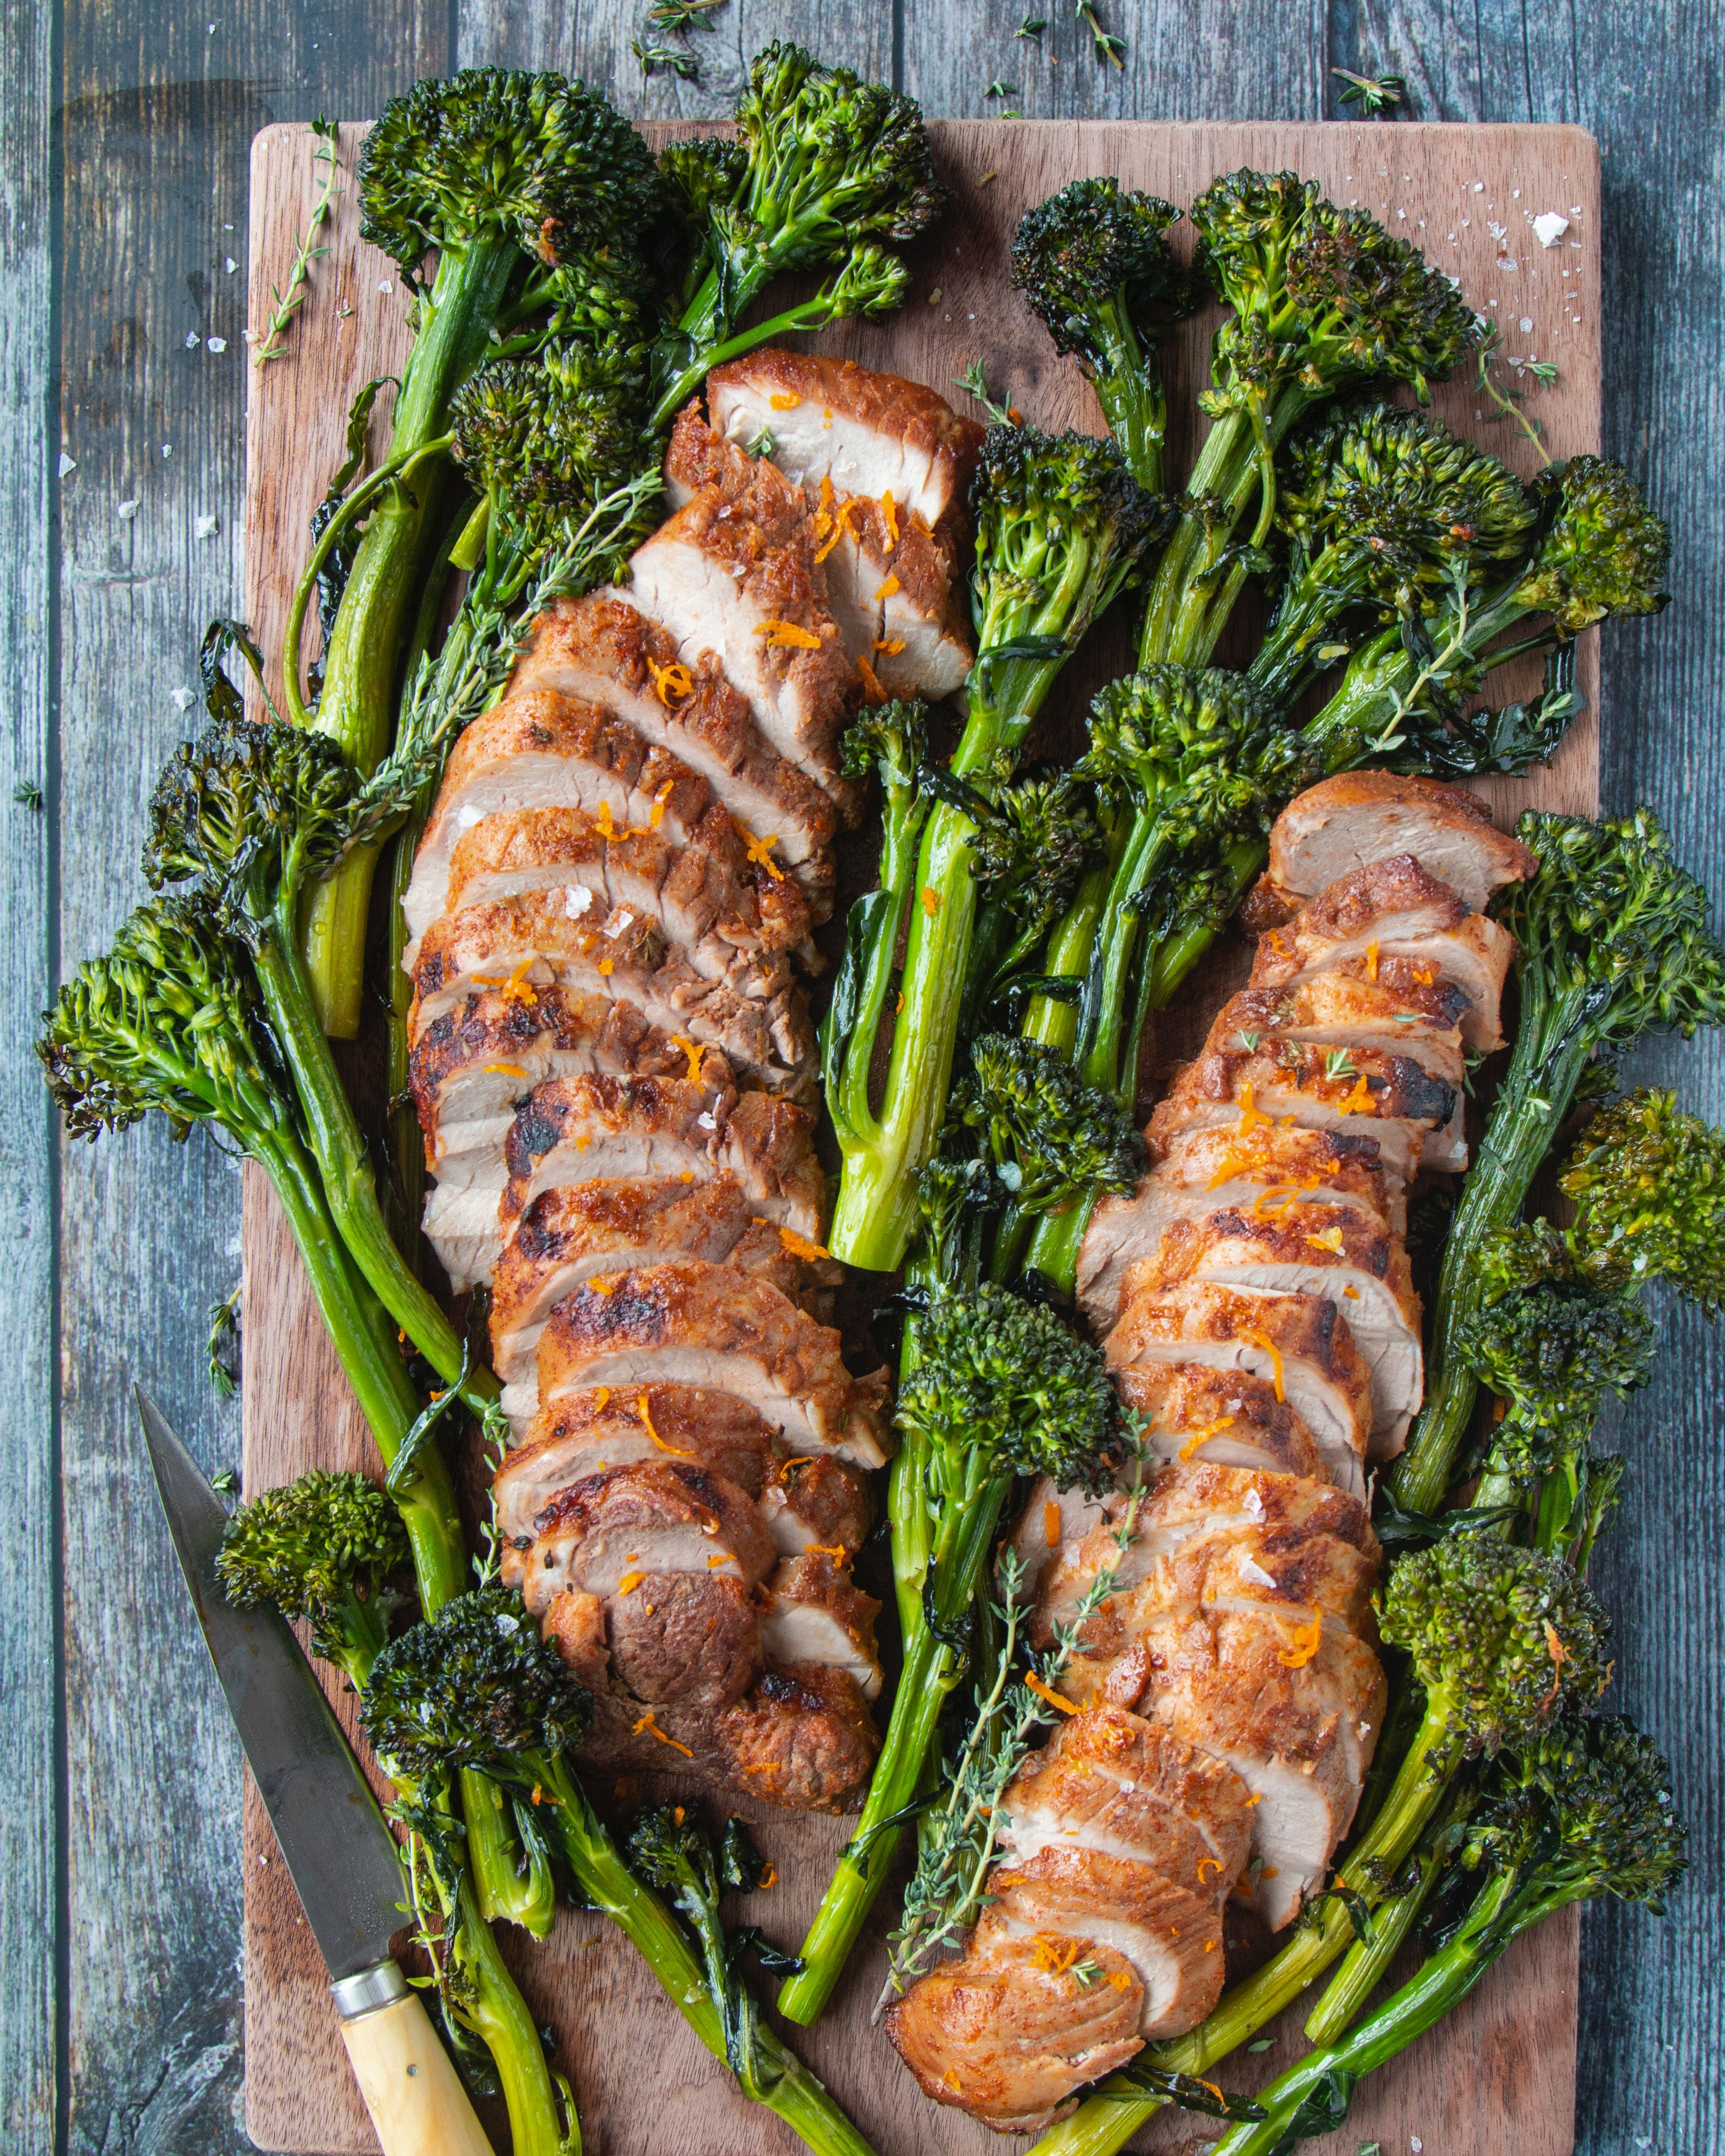 Citrus-Glazed Pork Tenderloin with Garlic Broccolini